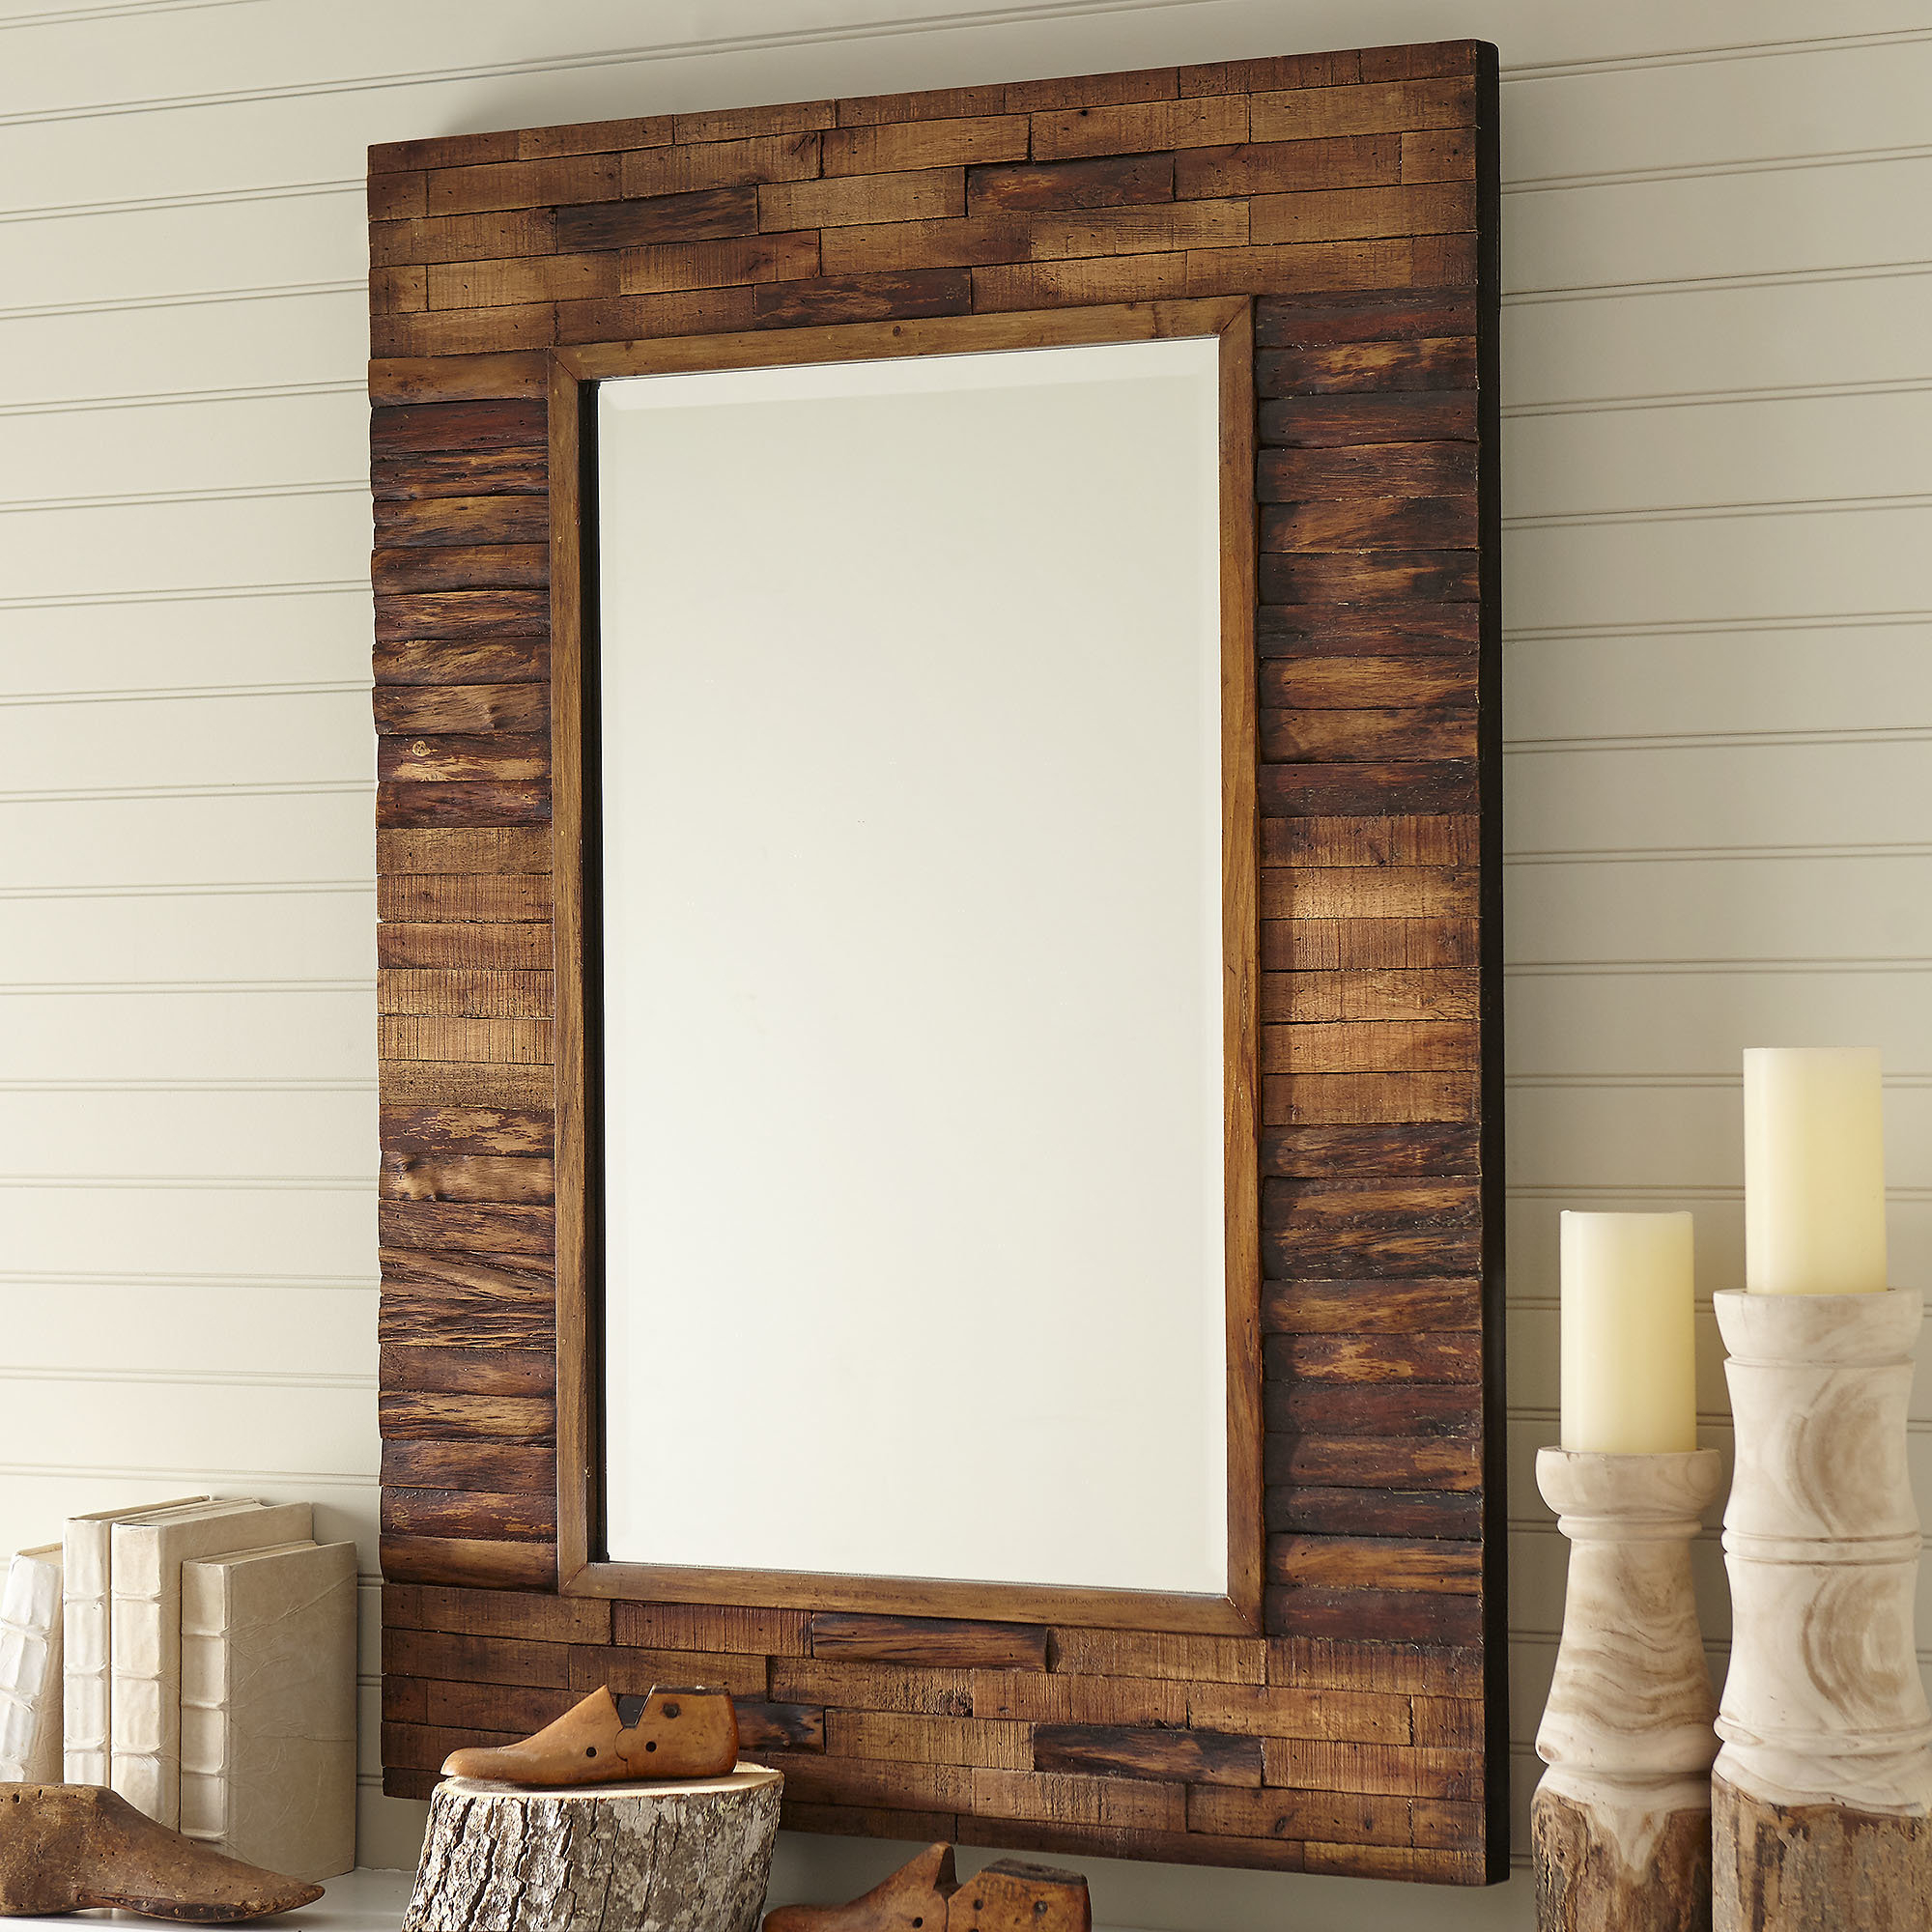 Latest Booth Reclaimed Wall Mirror Accent Pertaining To Wood Wall Mirrors (Gallery 18 of 20)